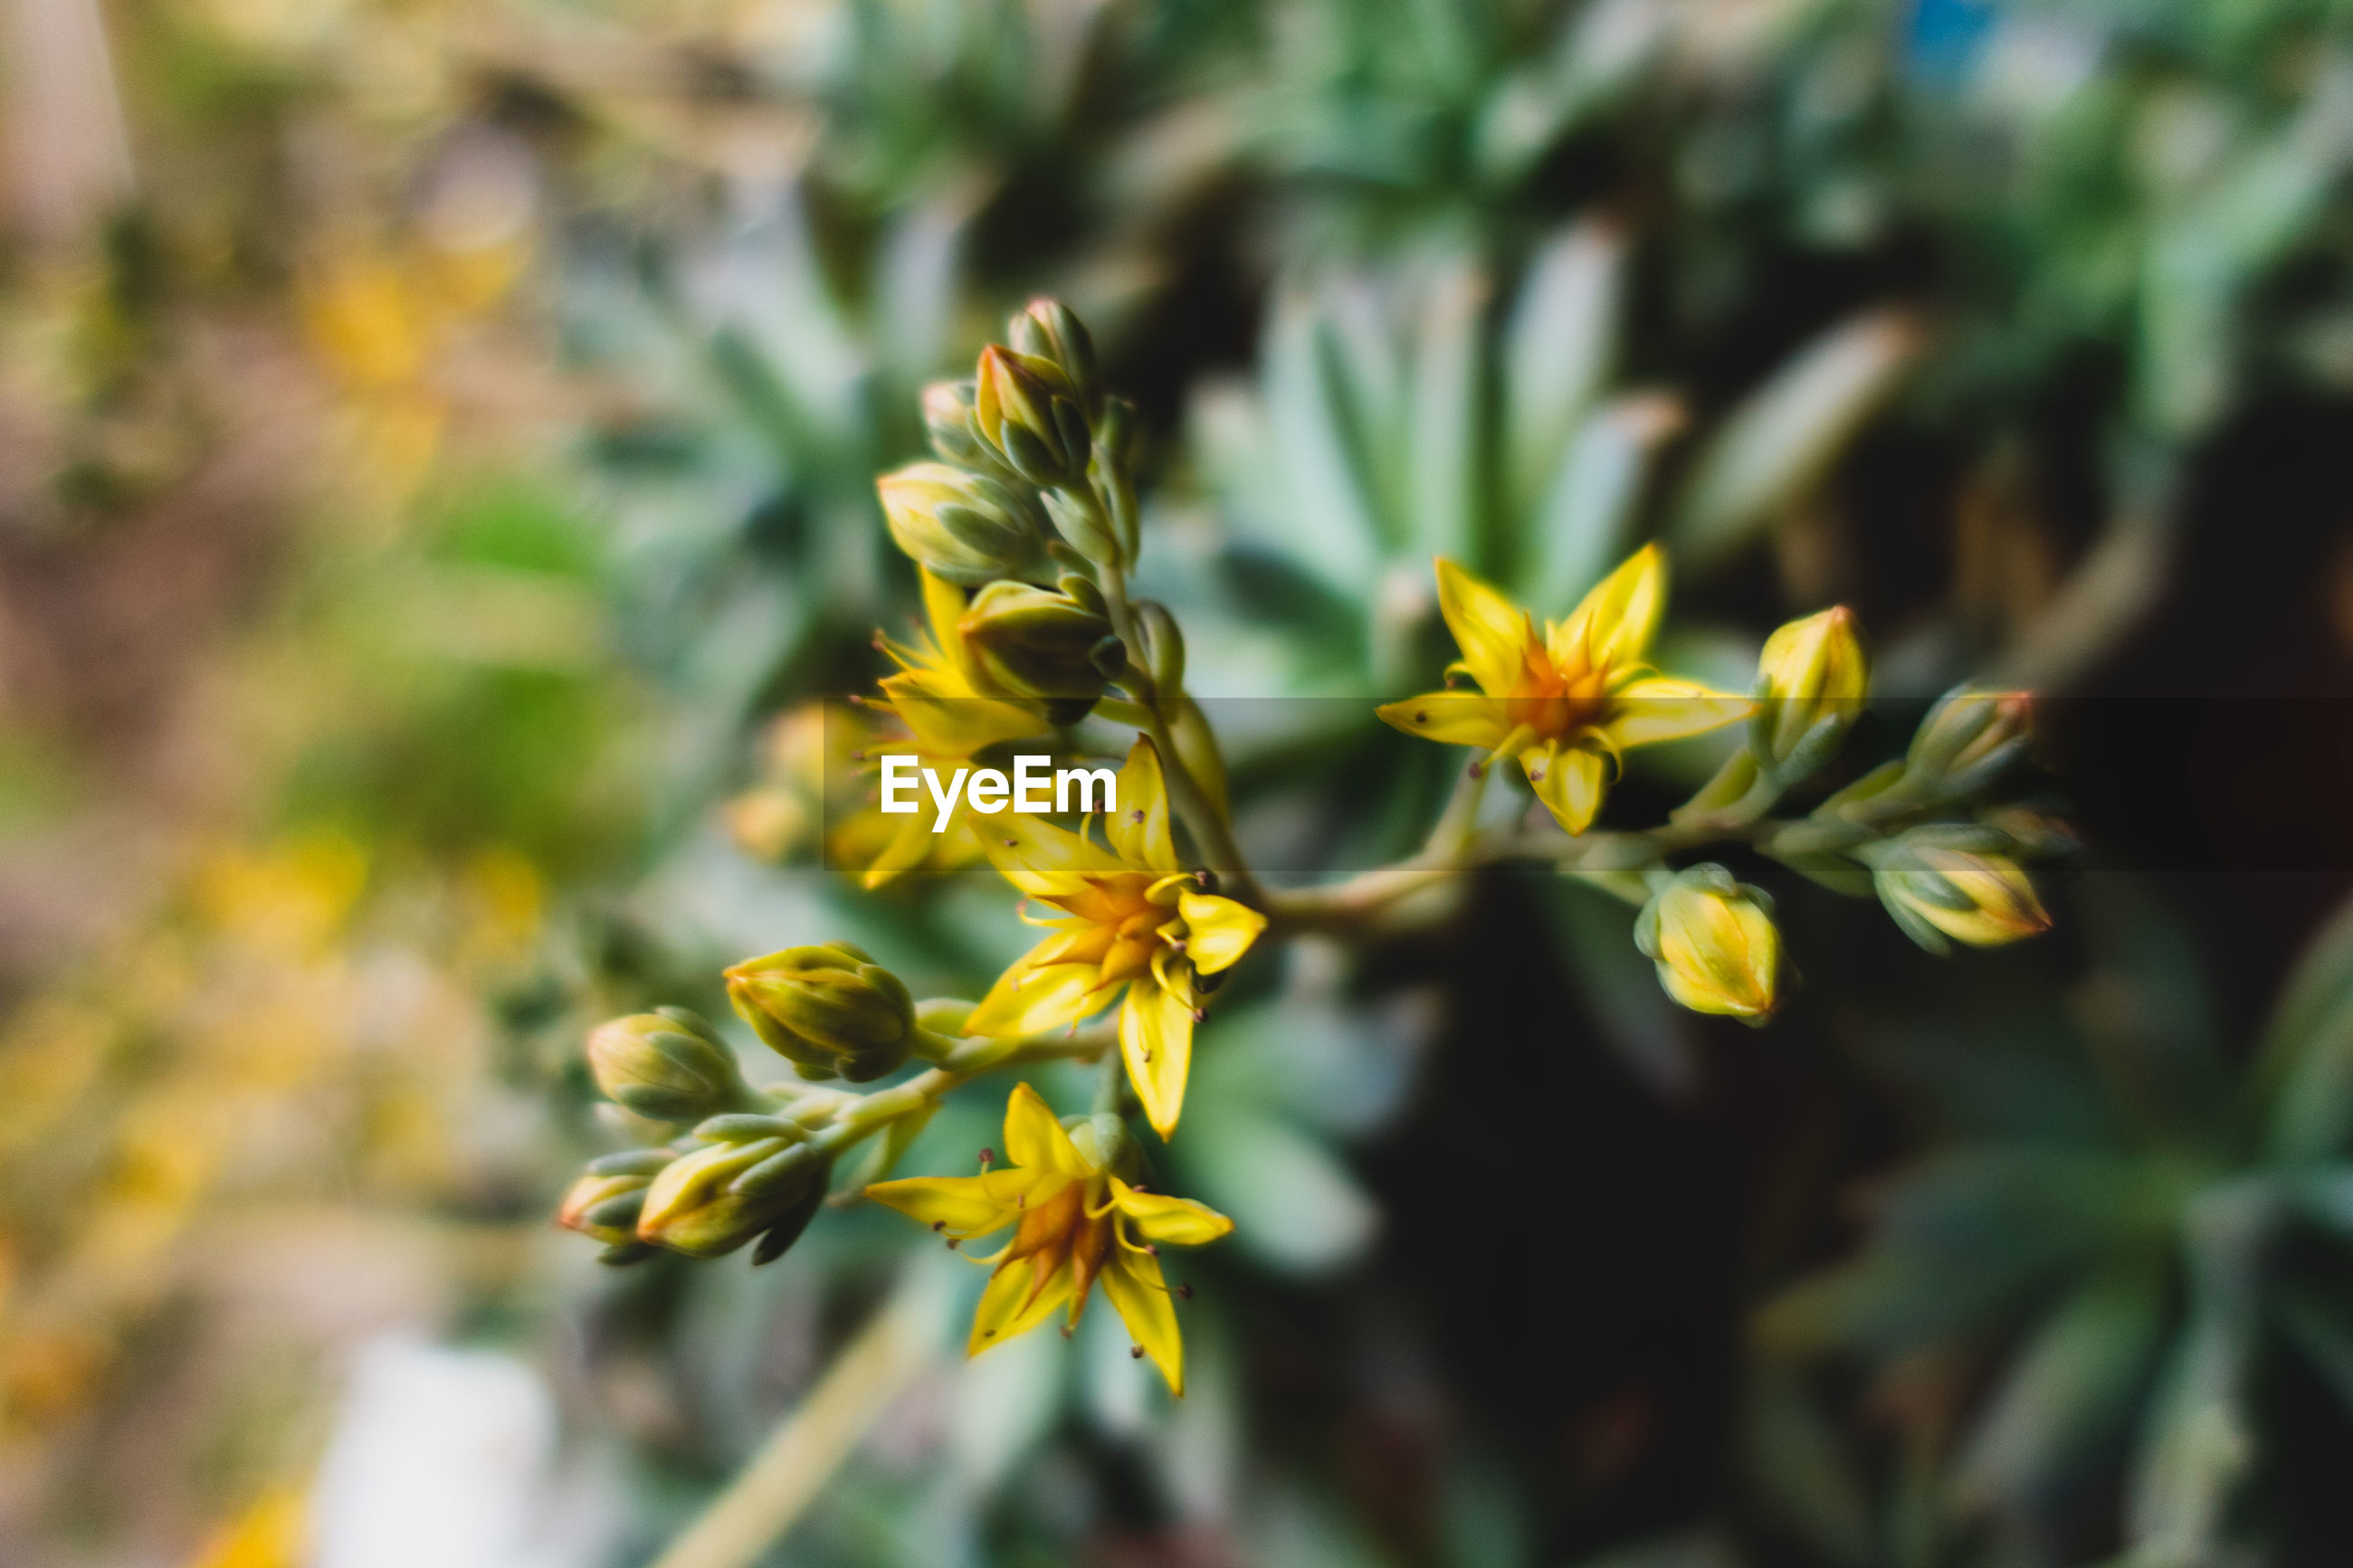 CLOSE-UP OF YELLOW FLOWERING PLANT AGAINST BRIGHT SUN